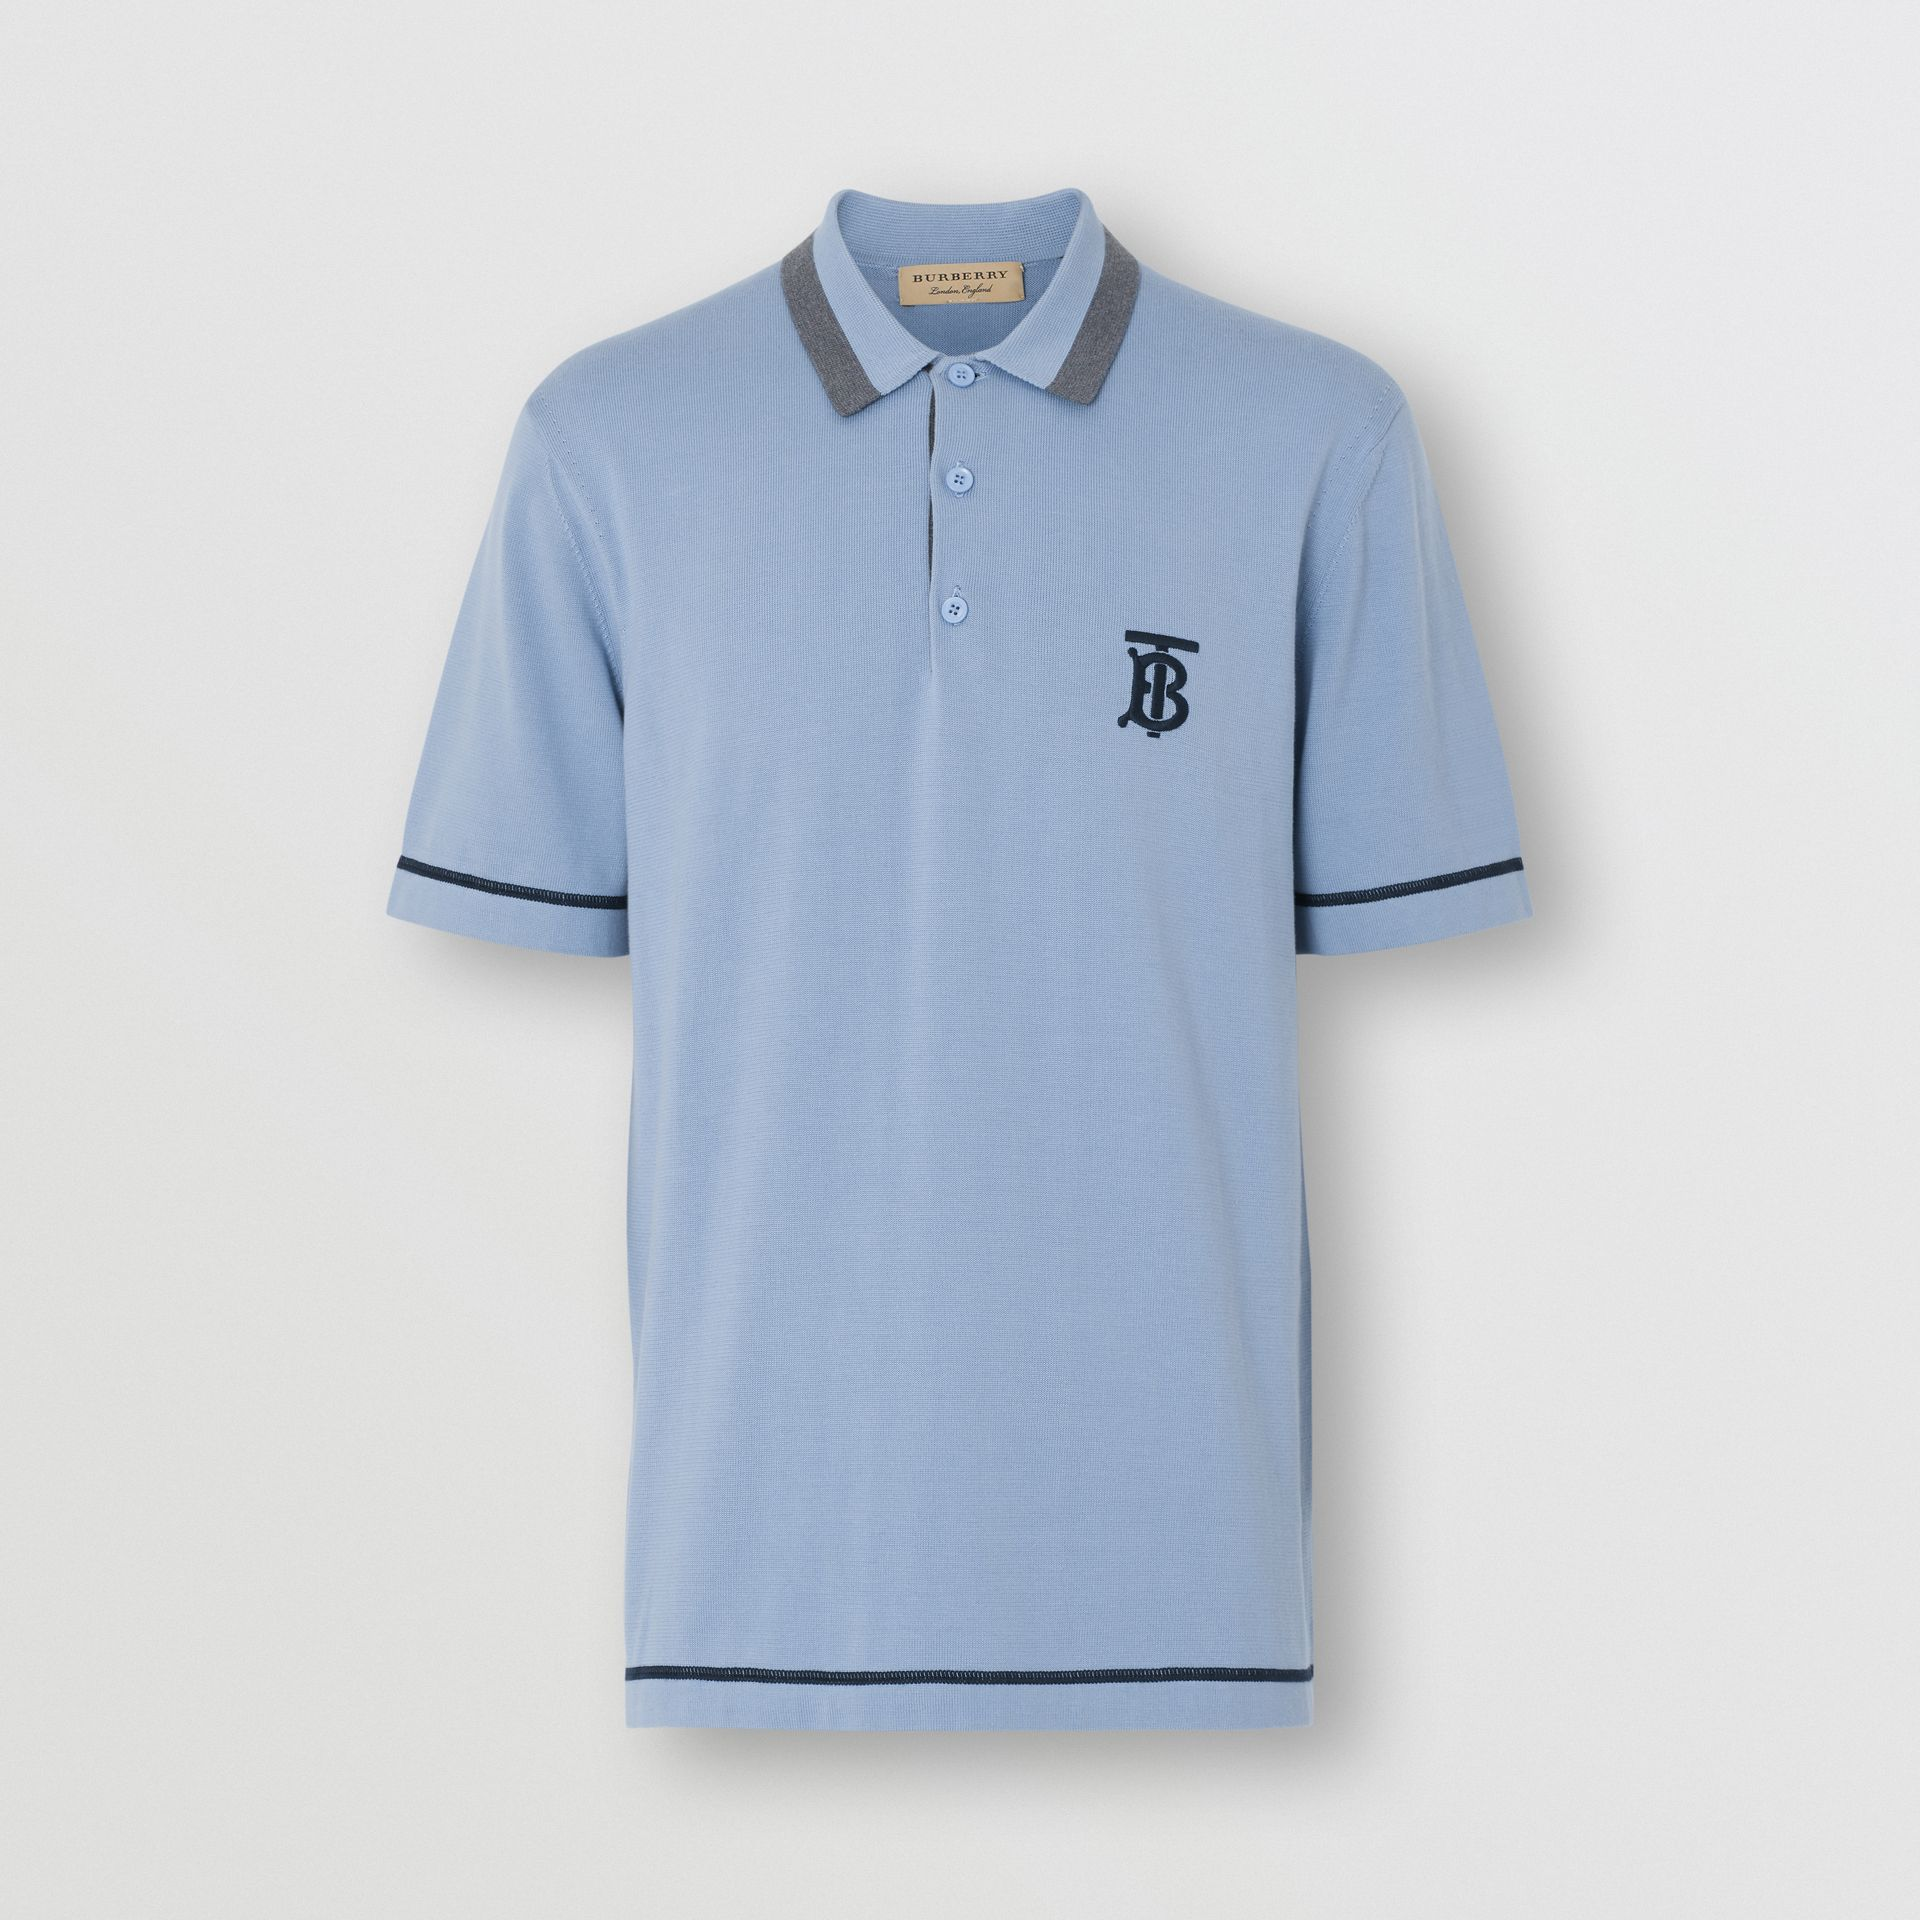 Monogram Motif Tipped Cotton Polo Shirt in Baby Blue - Men | Burberry Australia - gallery image 3